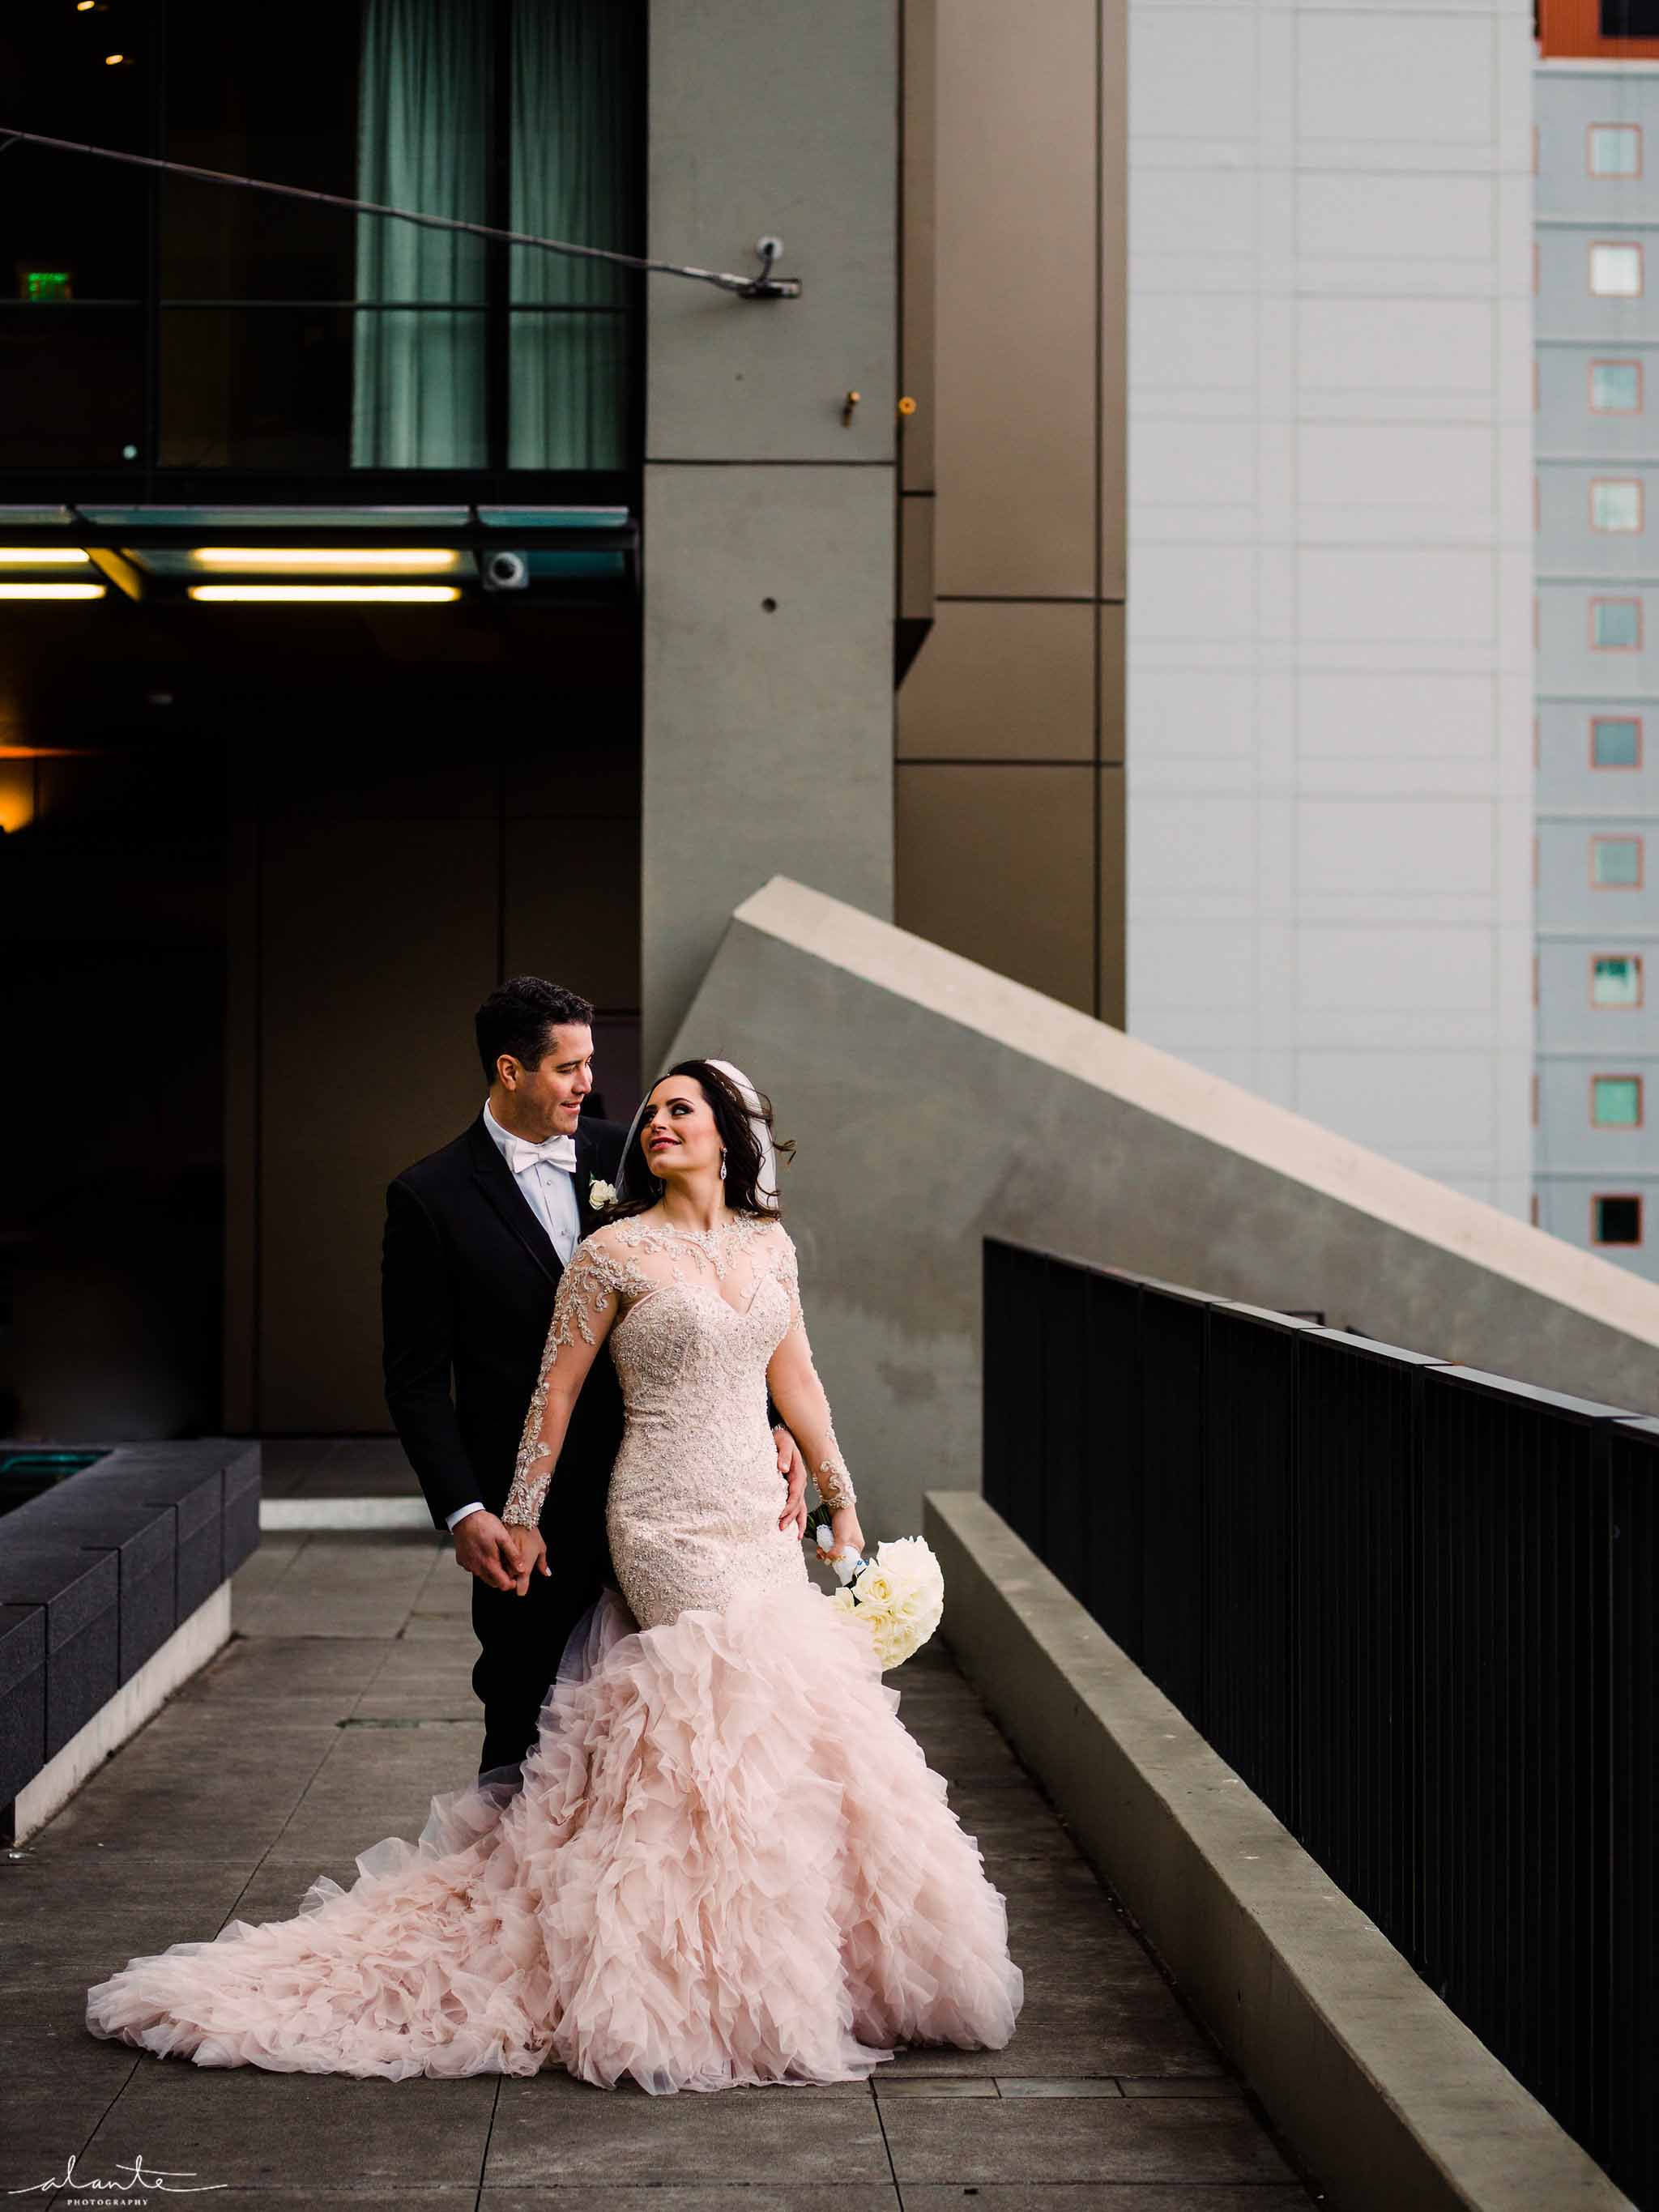 Bride and groom at the winter wedding at Four Seasons Seattle - Luxury Winter Wedding at the Four Seasons by Flora Nova Design Seattle